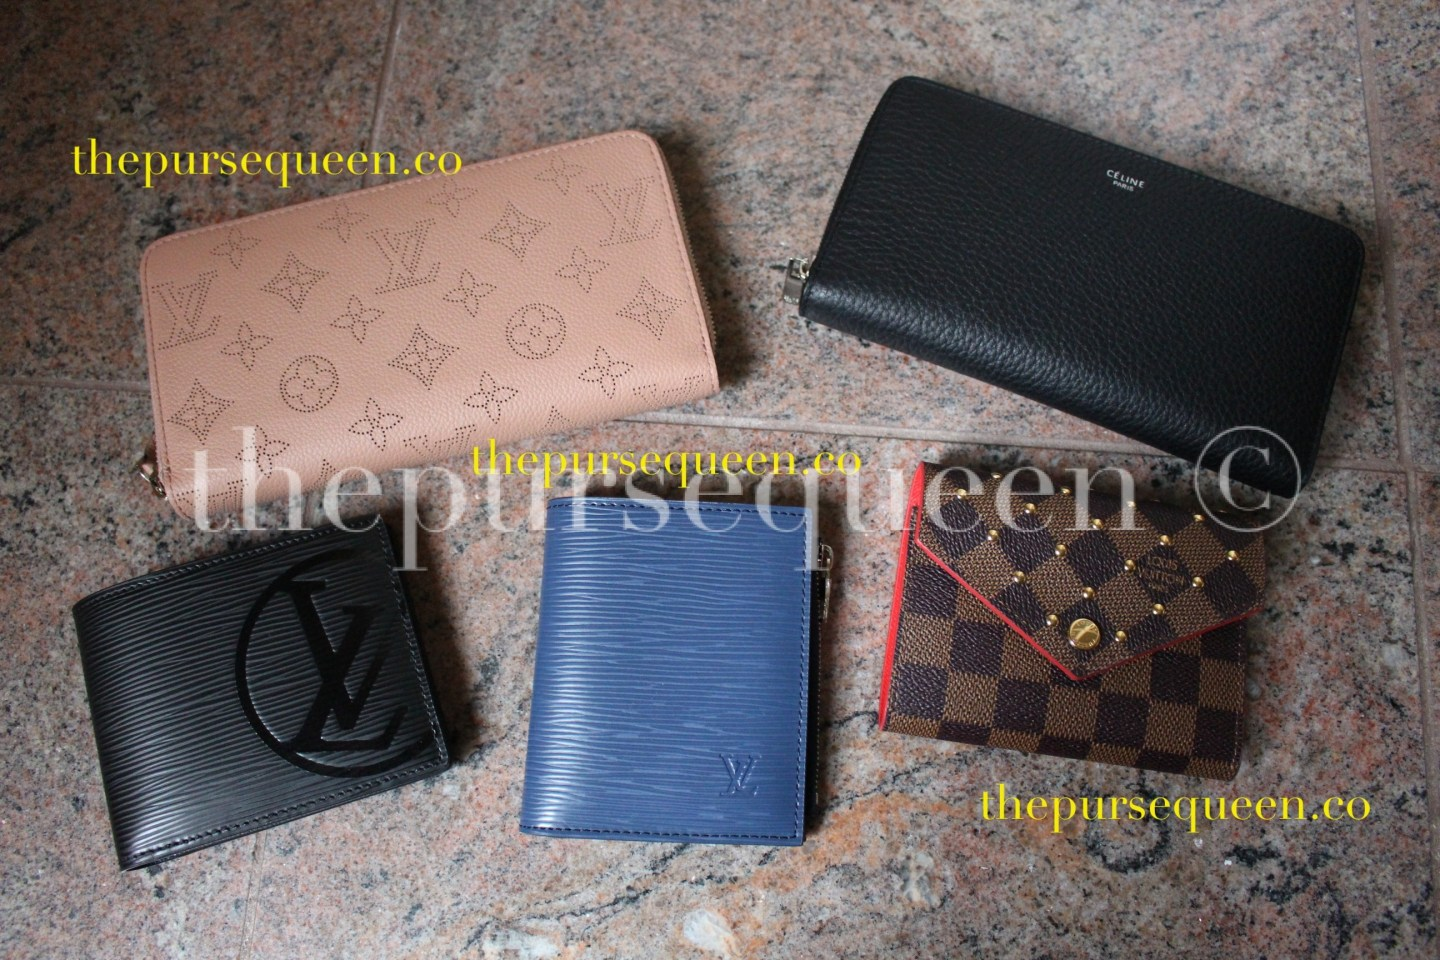 Celine & Louis Vuitton Replica Wallet Collection #replicawallets #replicabags